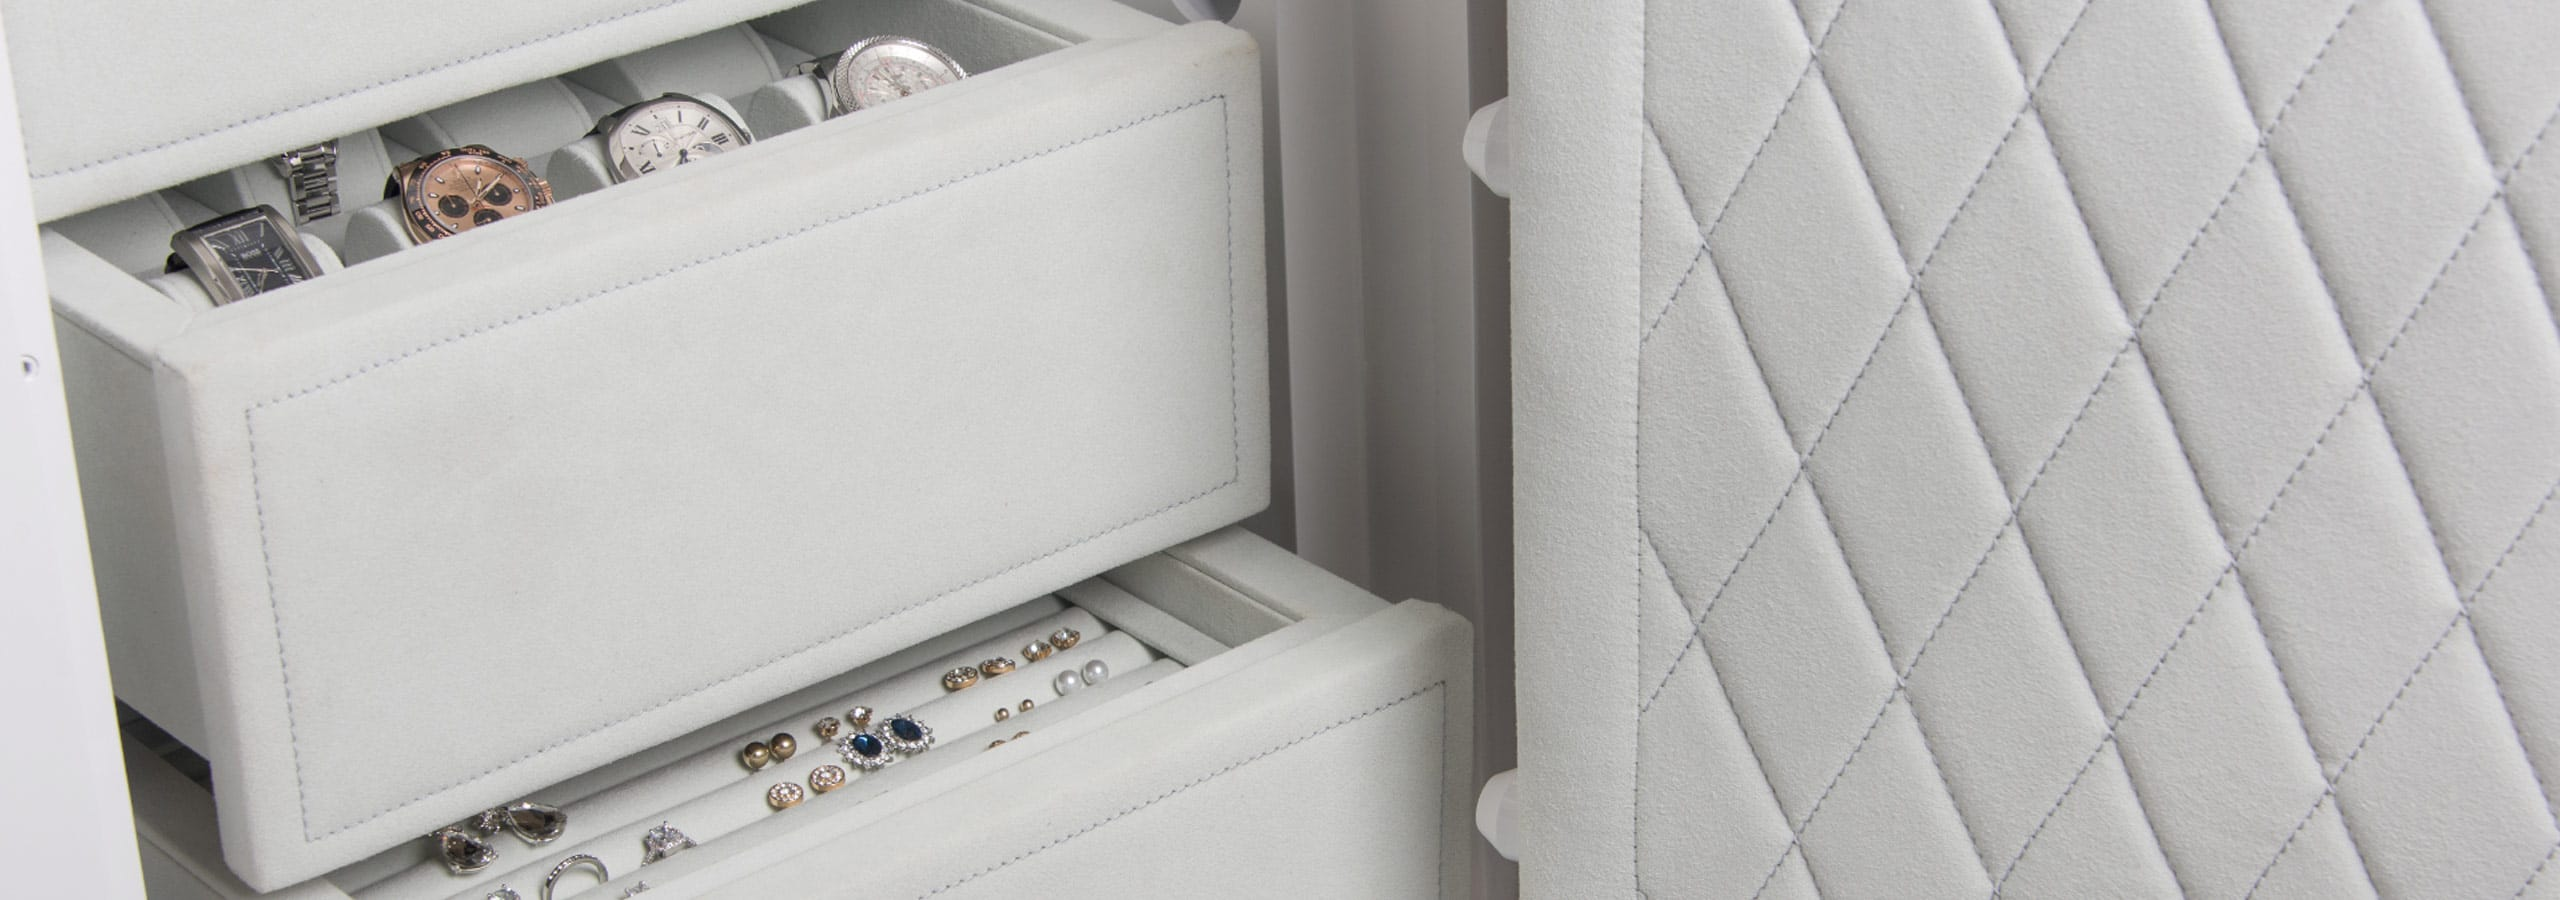 Associated Security- luxury safes handmade in Great Britain